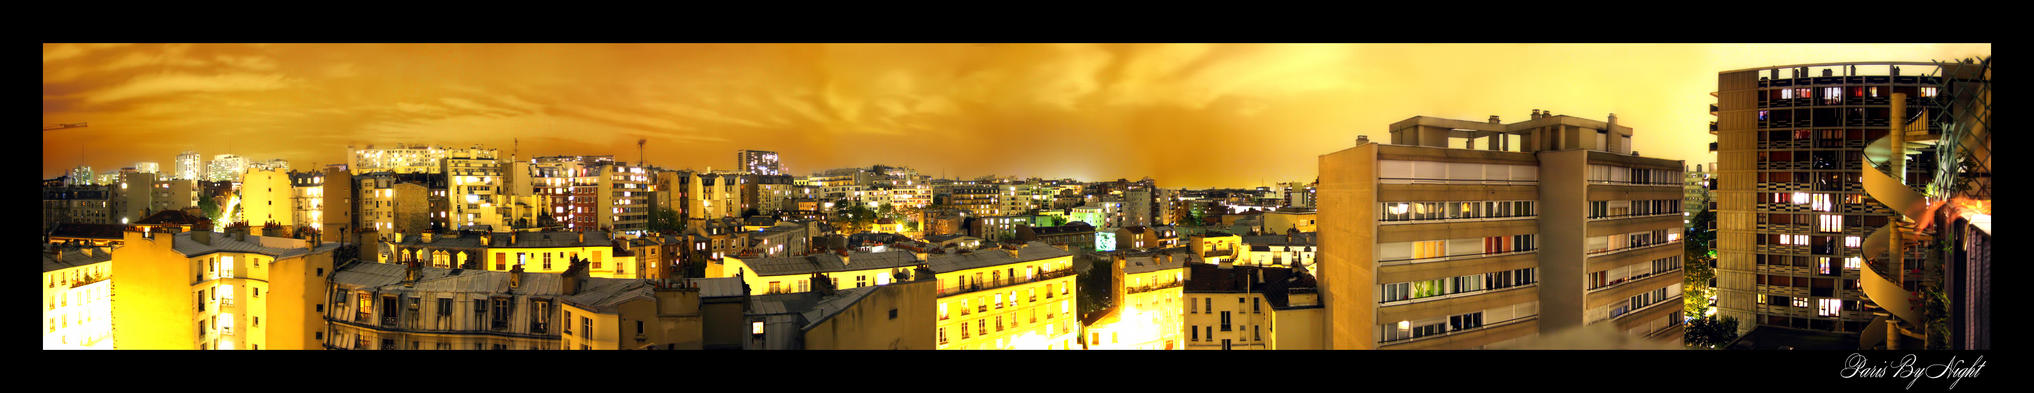 paris city by night by klefer